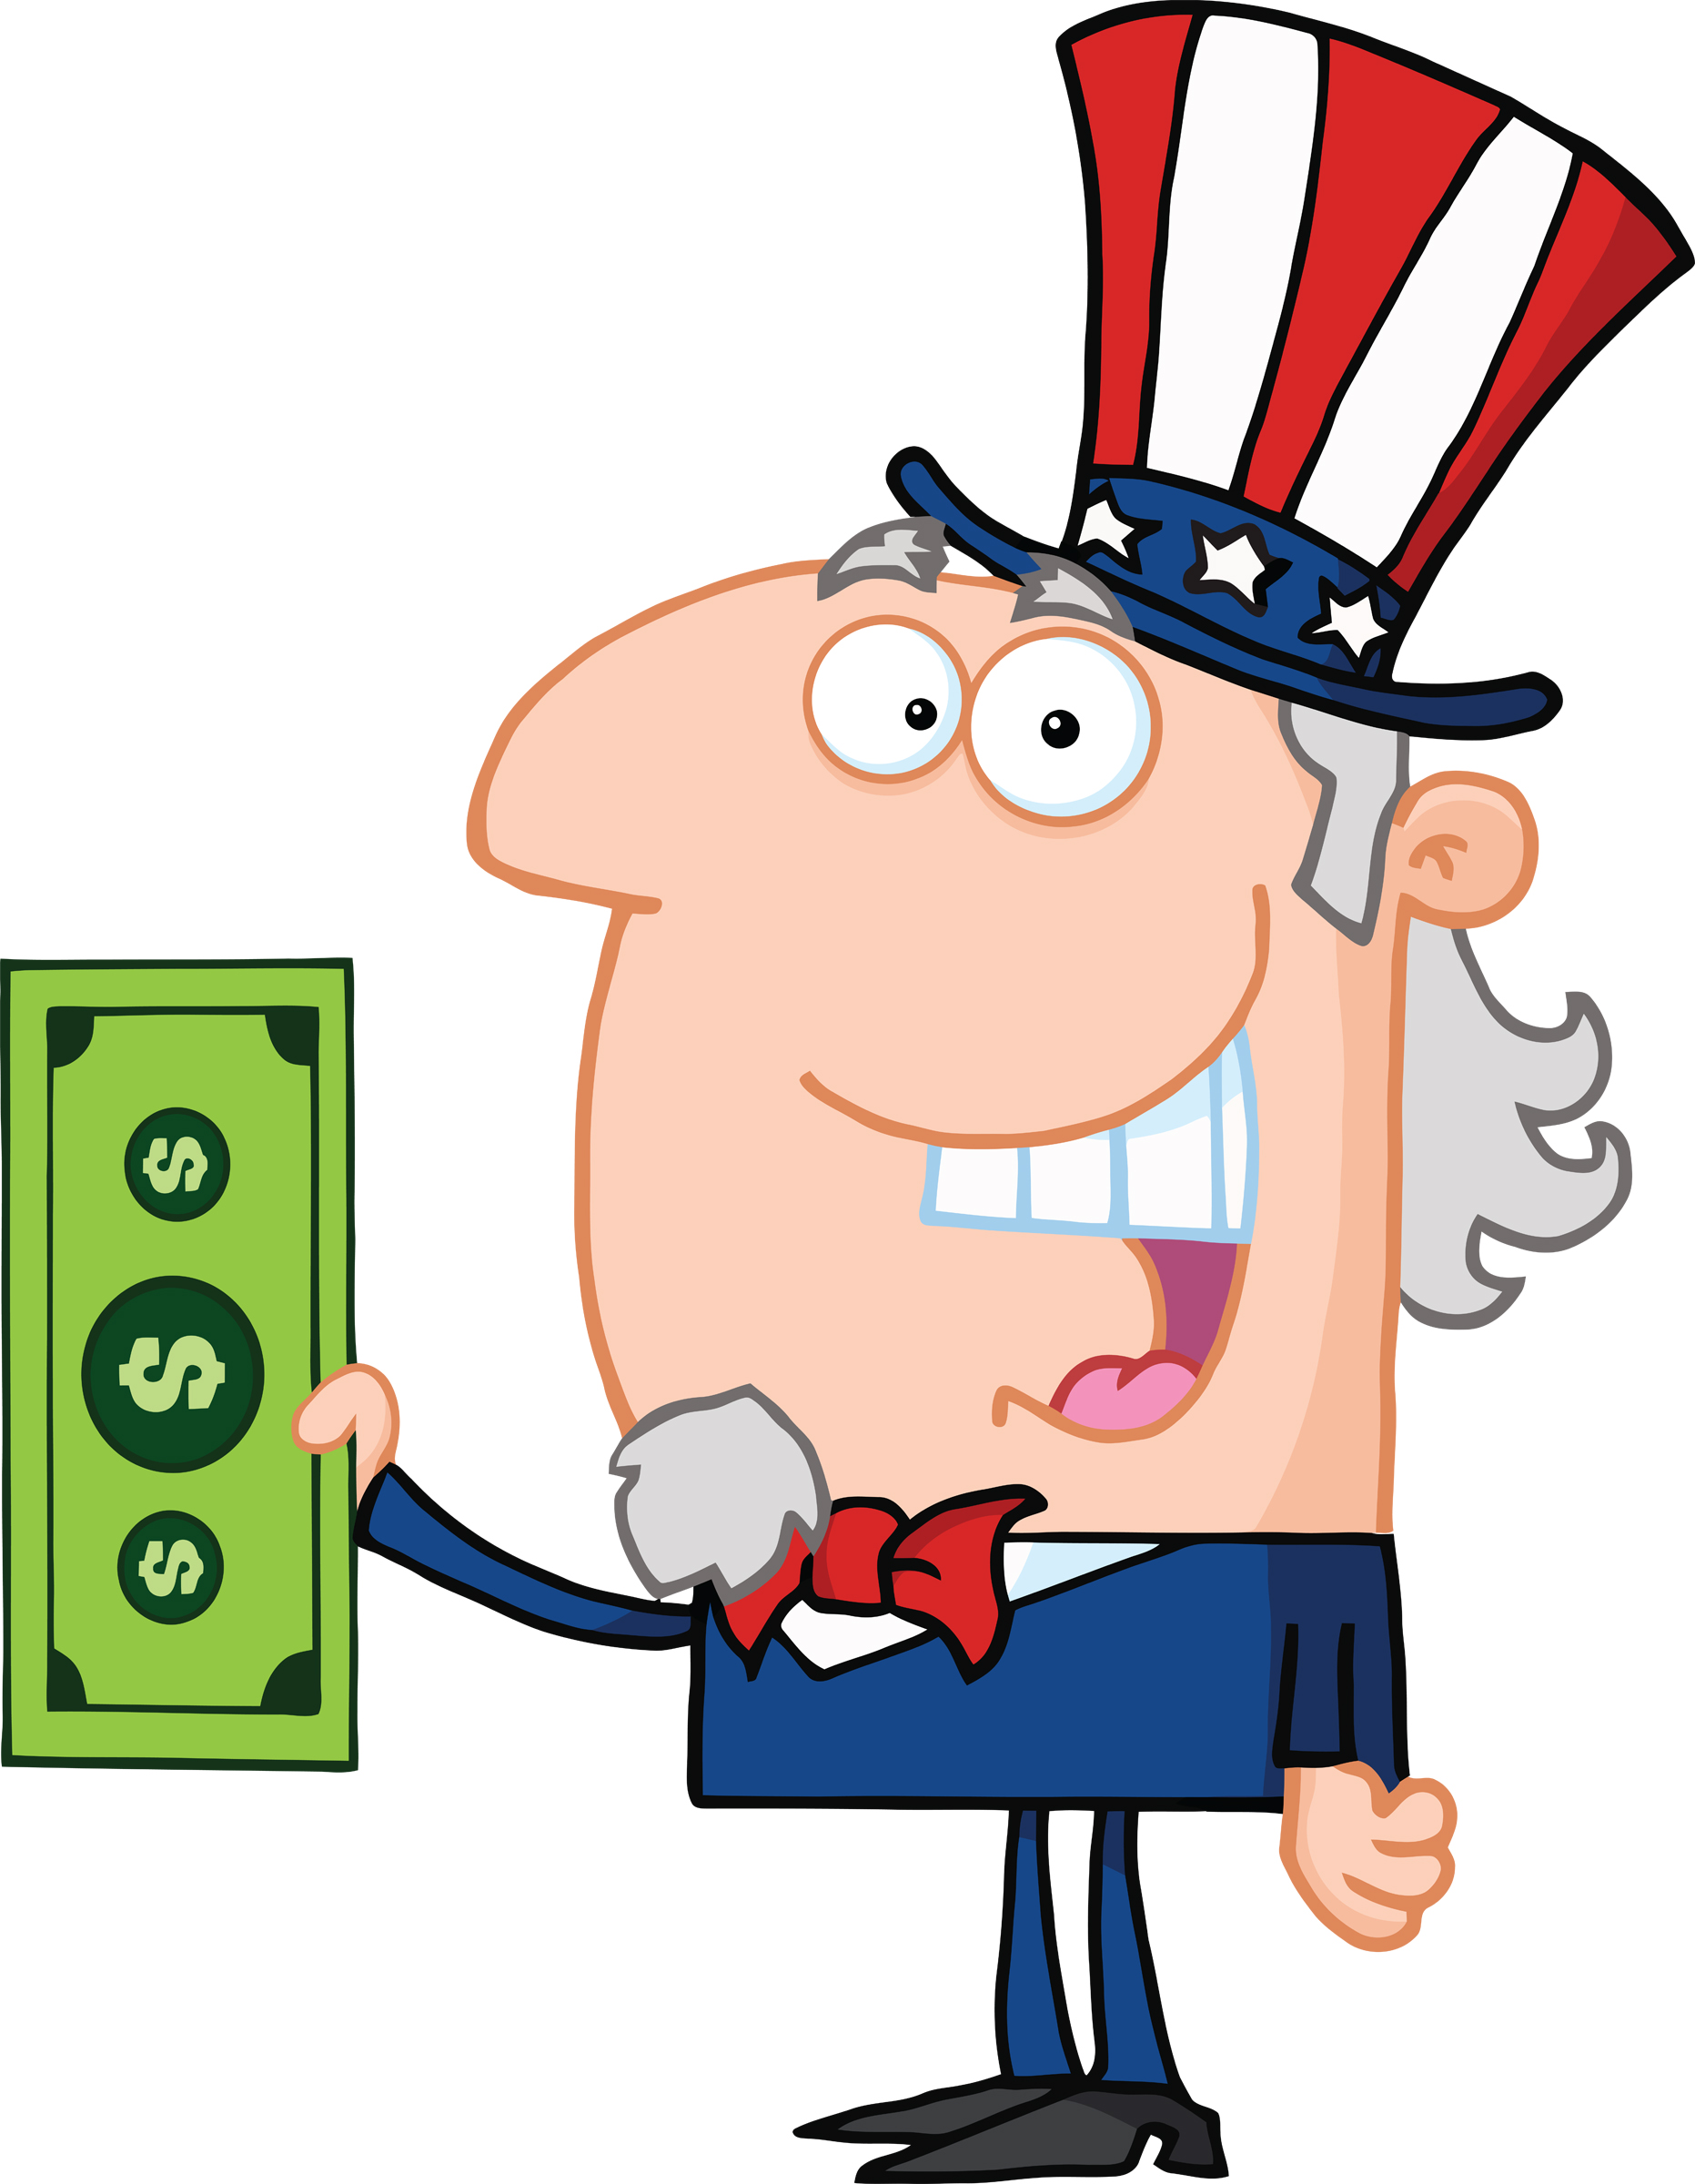 Uncle Sam clipart sales tax Images Tax Panda Free Clipart